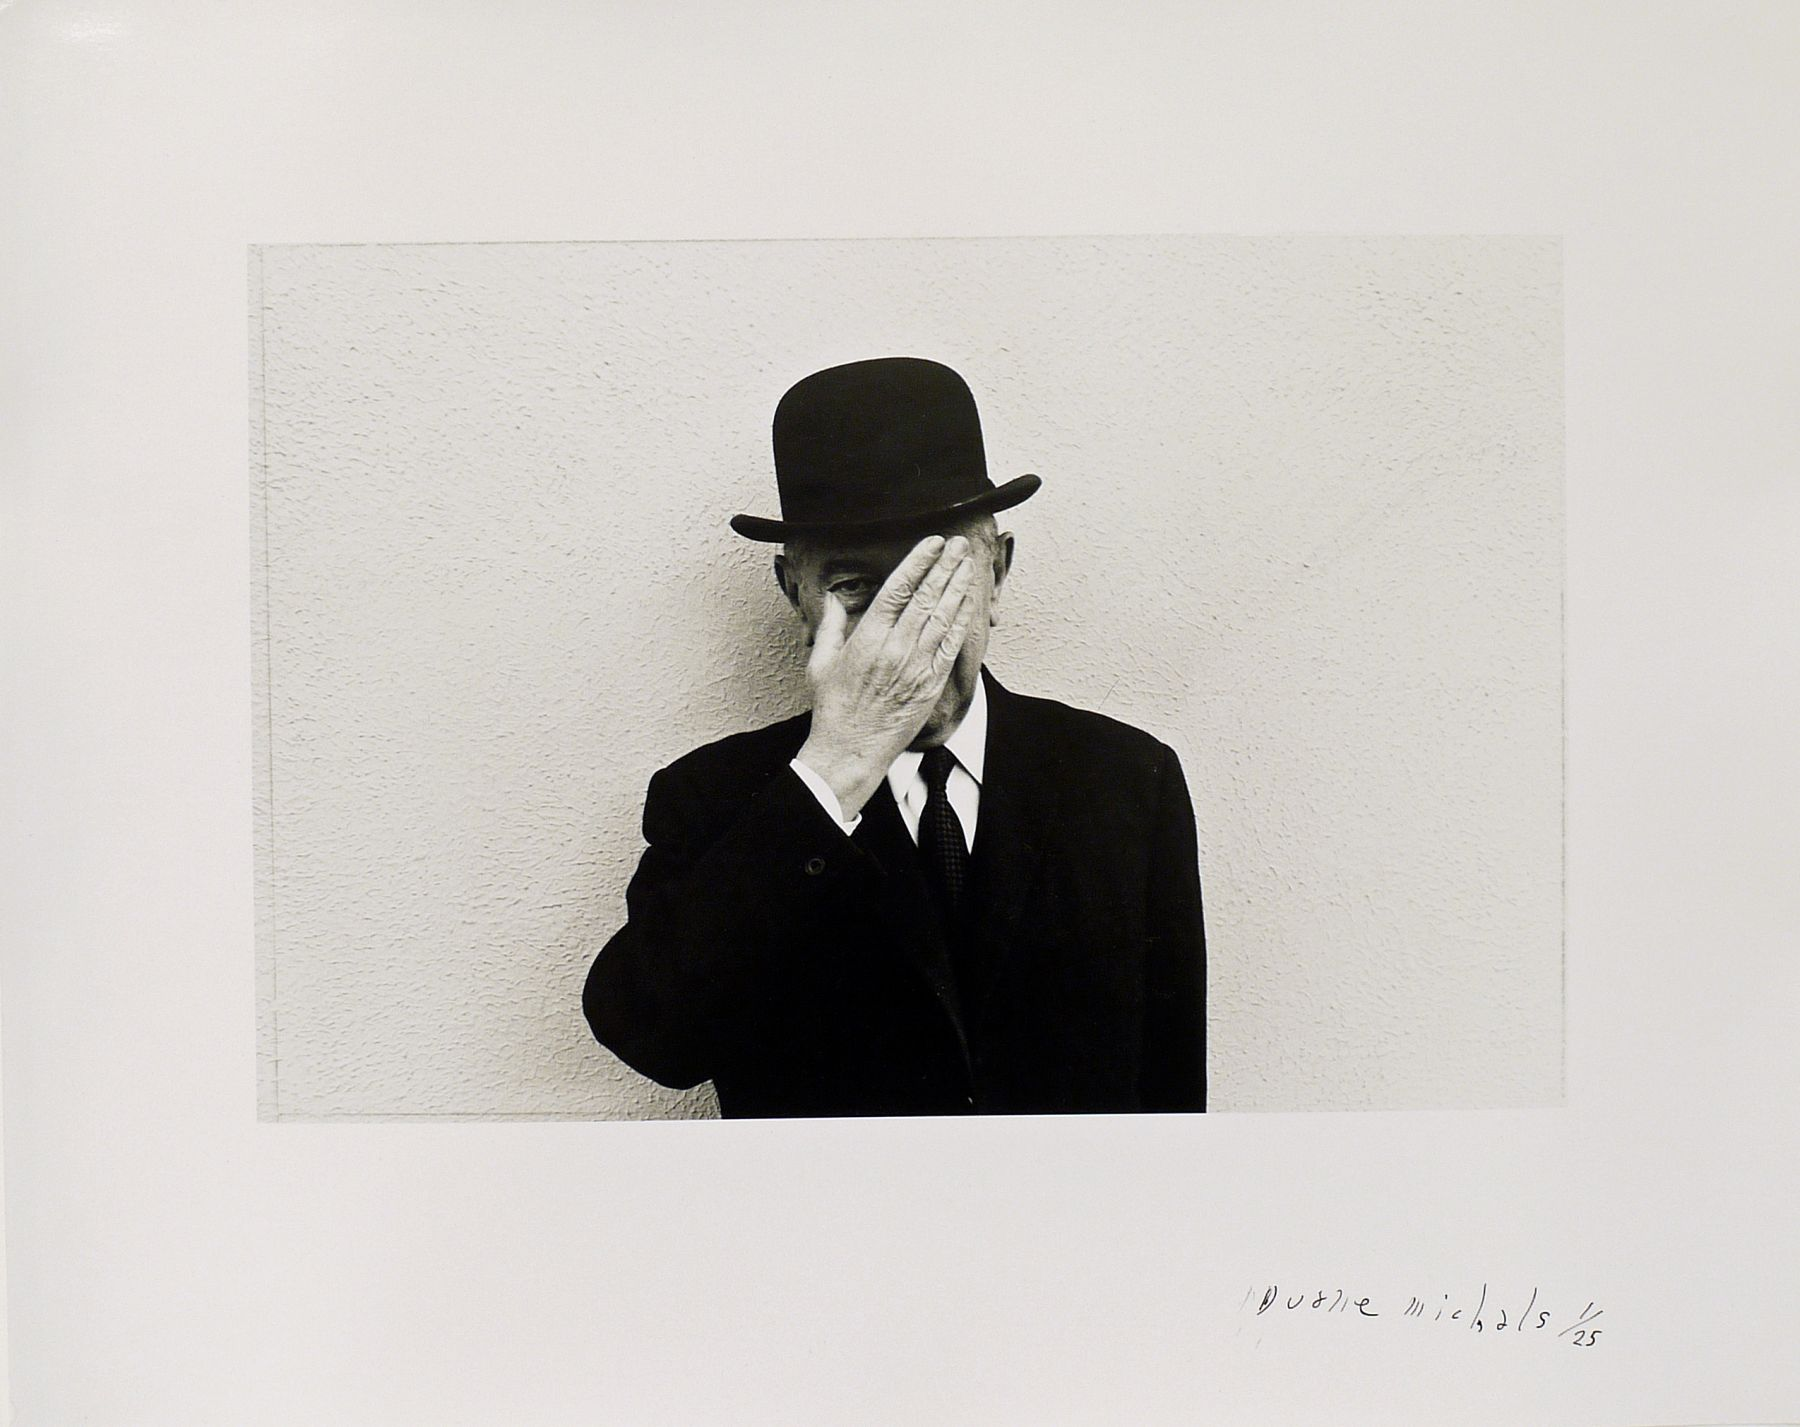 Duane Michals, Magritte with Hand Over Face Exposing One Eye, 1965/c. 1965